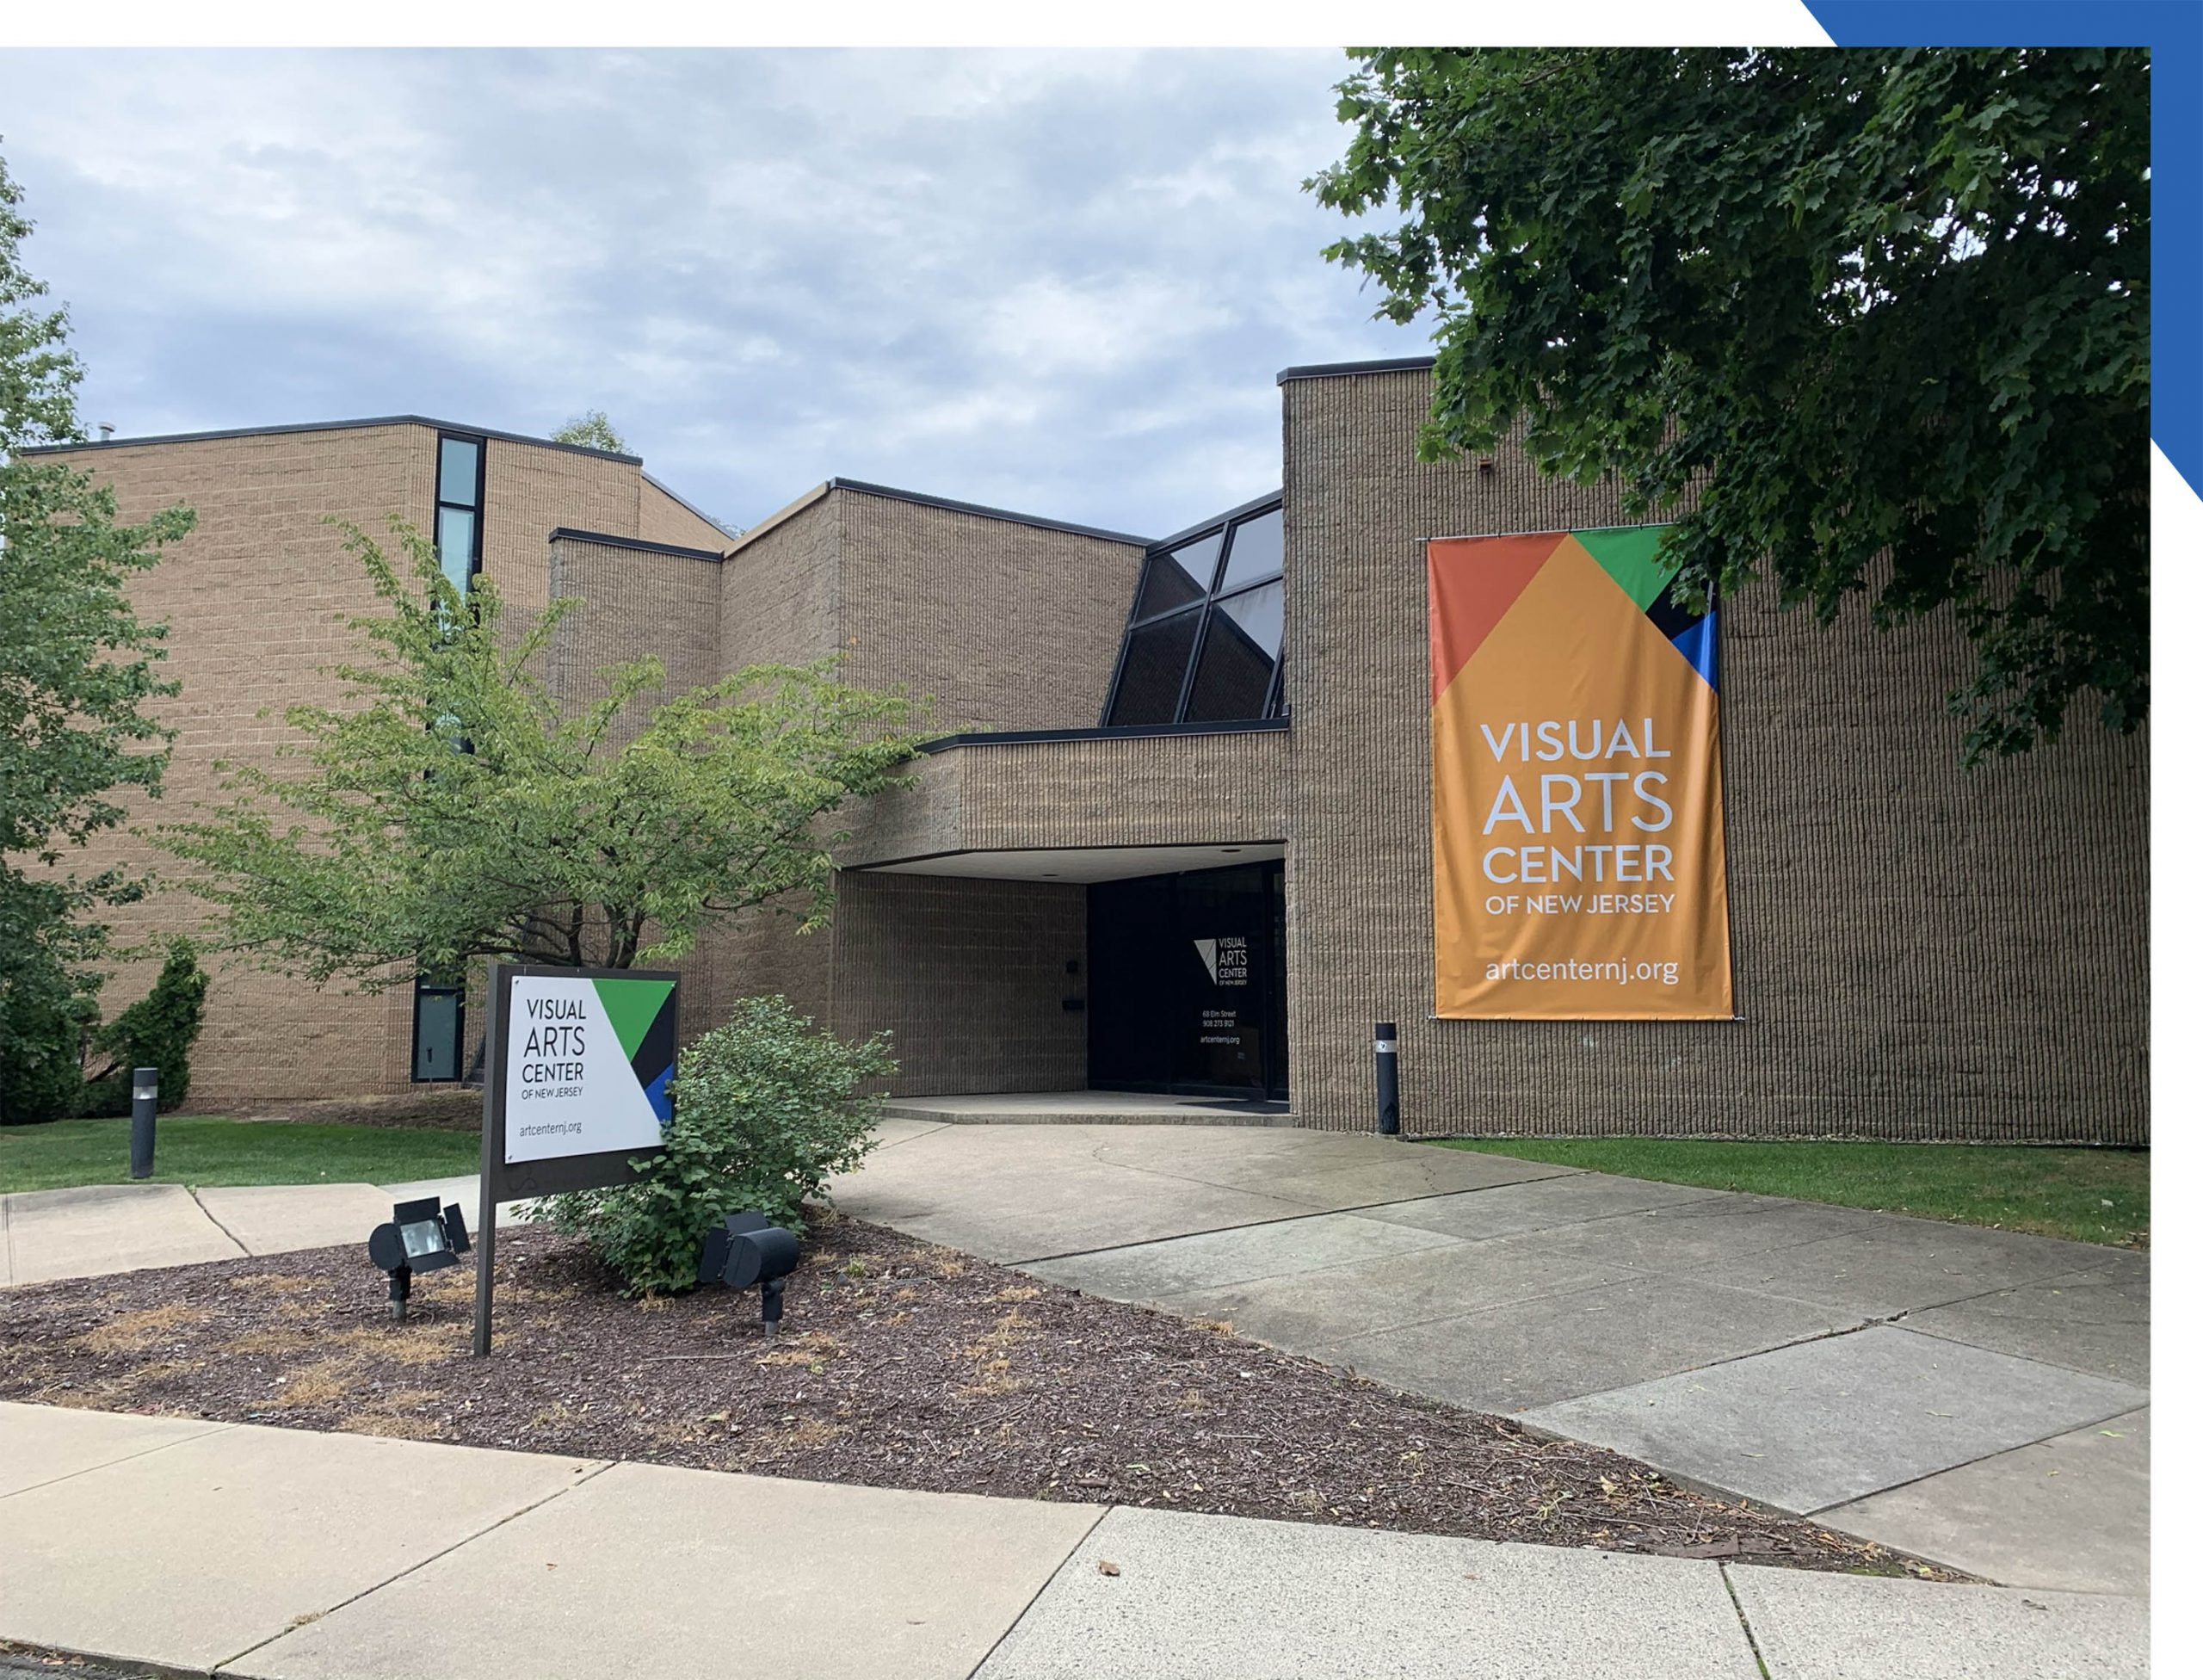 Exterior Image of the Art Center